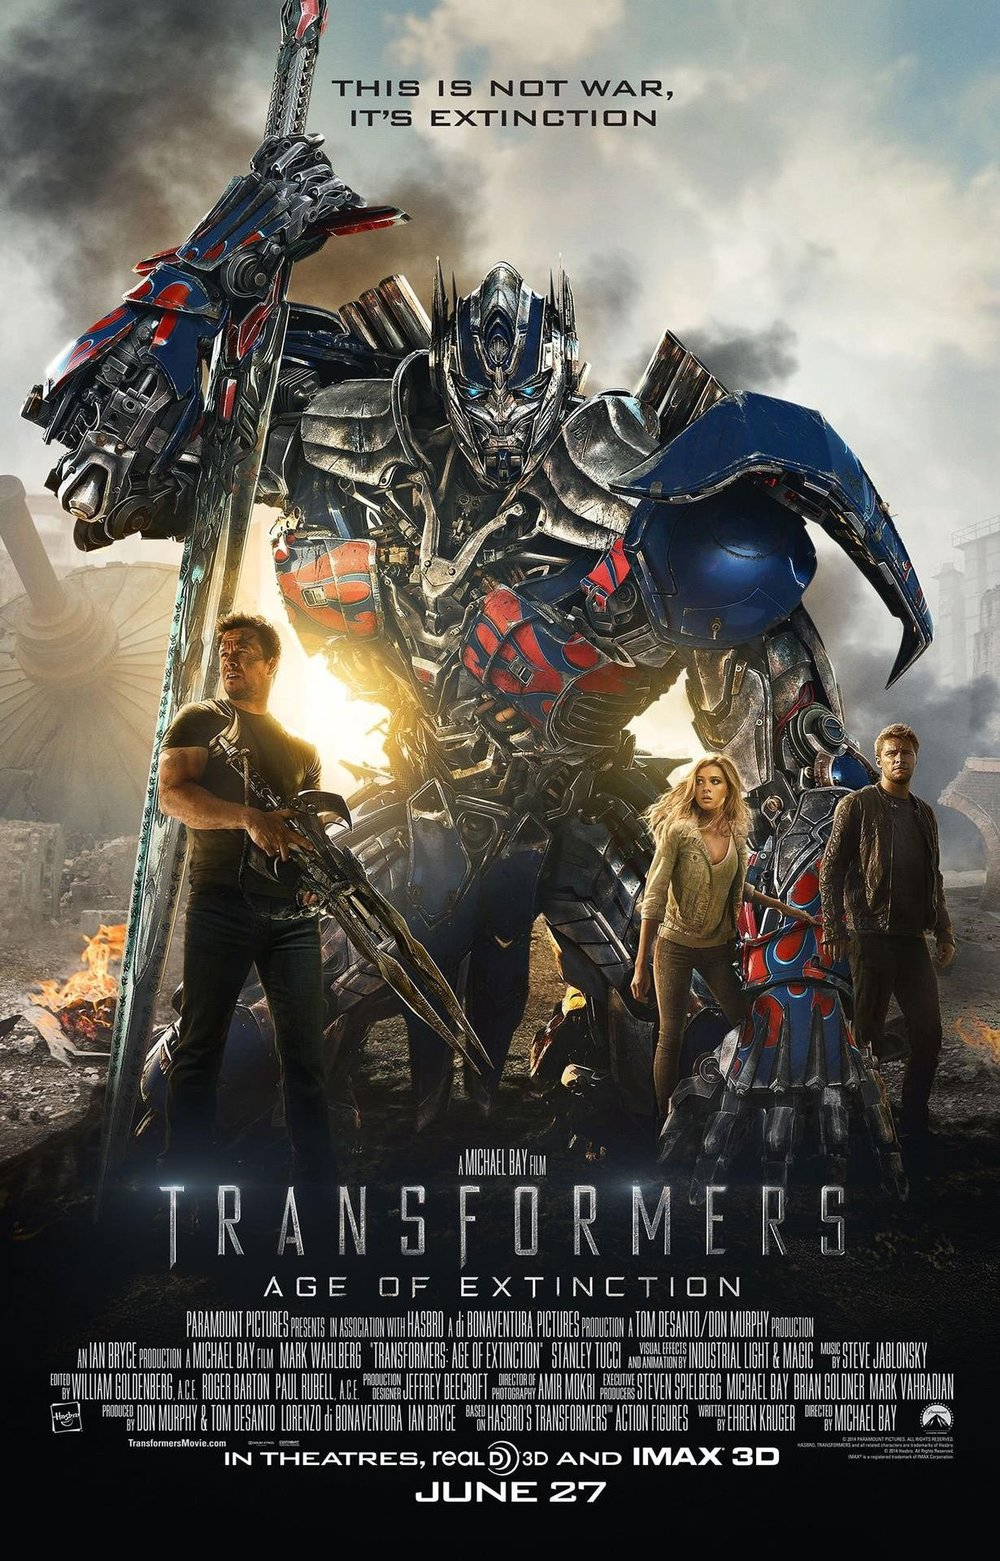 transformers-age-of-extinction-poster.jpg